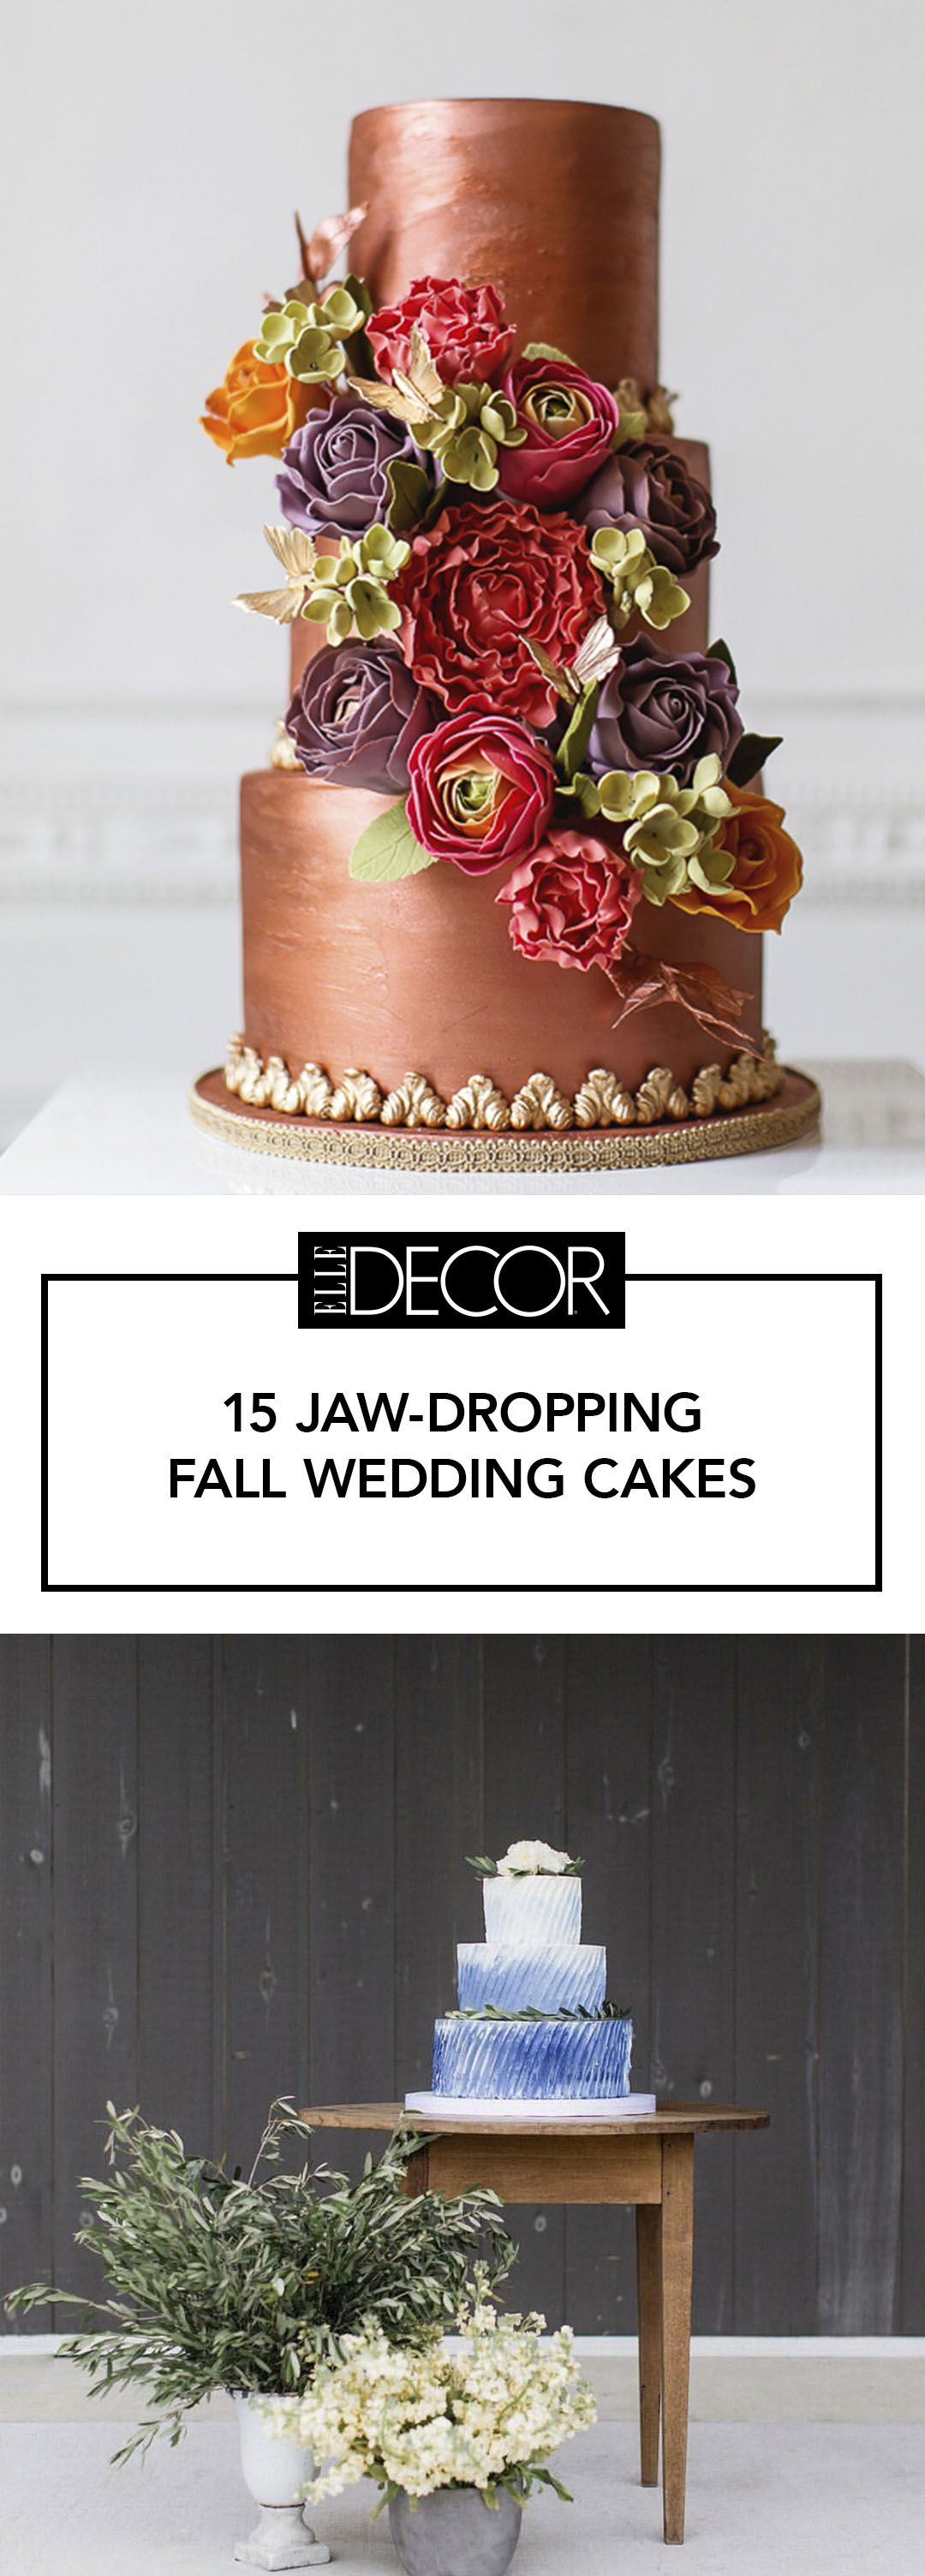 15 elegant fall wedding cakes ideas for fall wedding cake flavors 15 elegant fall wedding cakes ideas for fall wedding cake flavors and design junglespirit Image collections